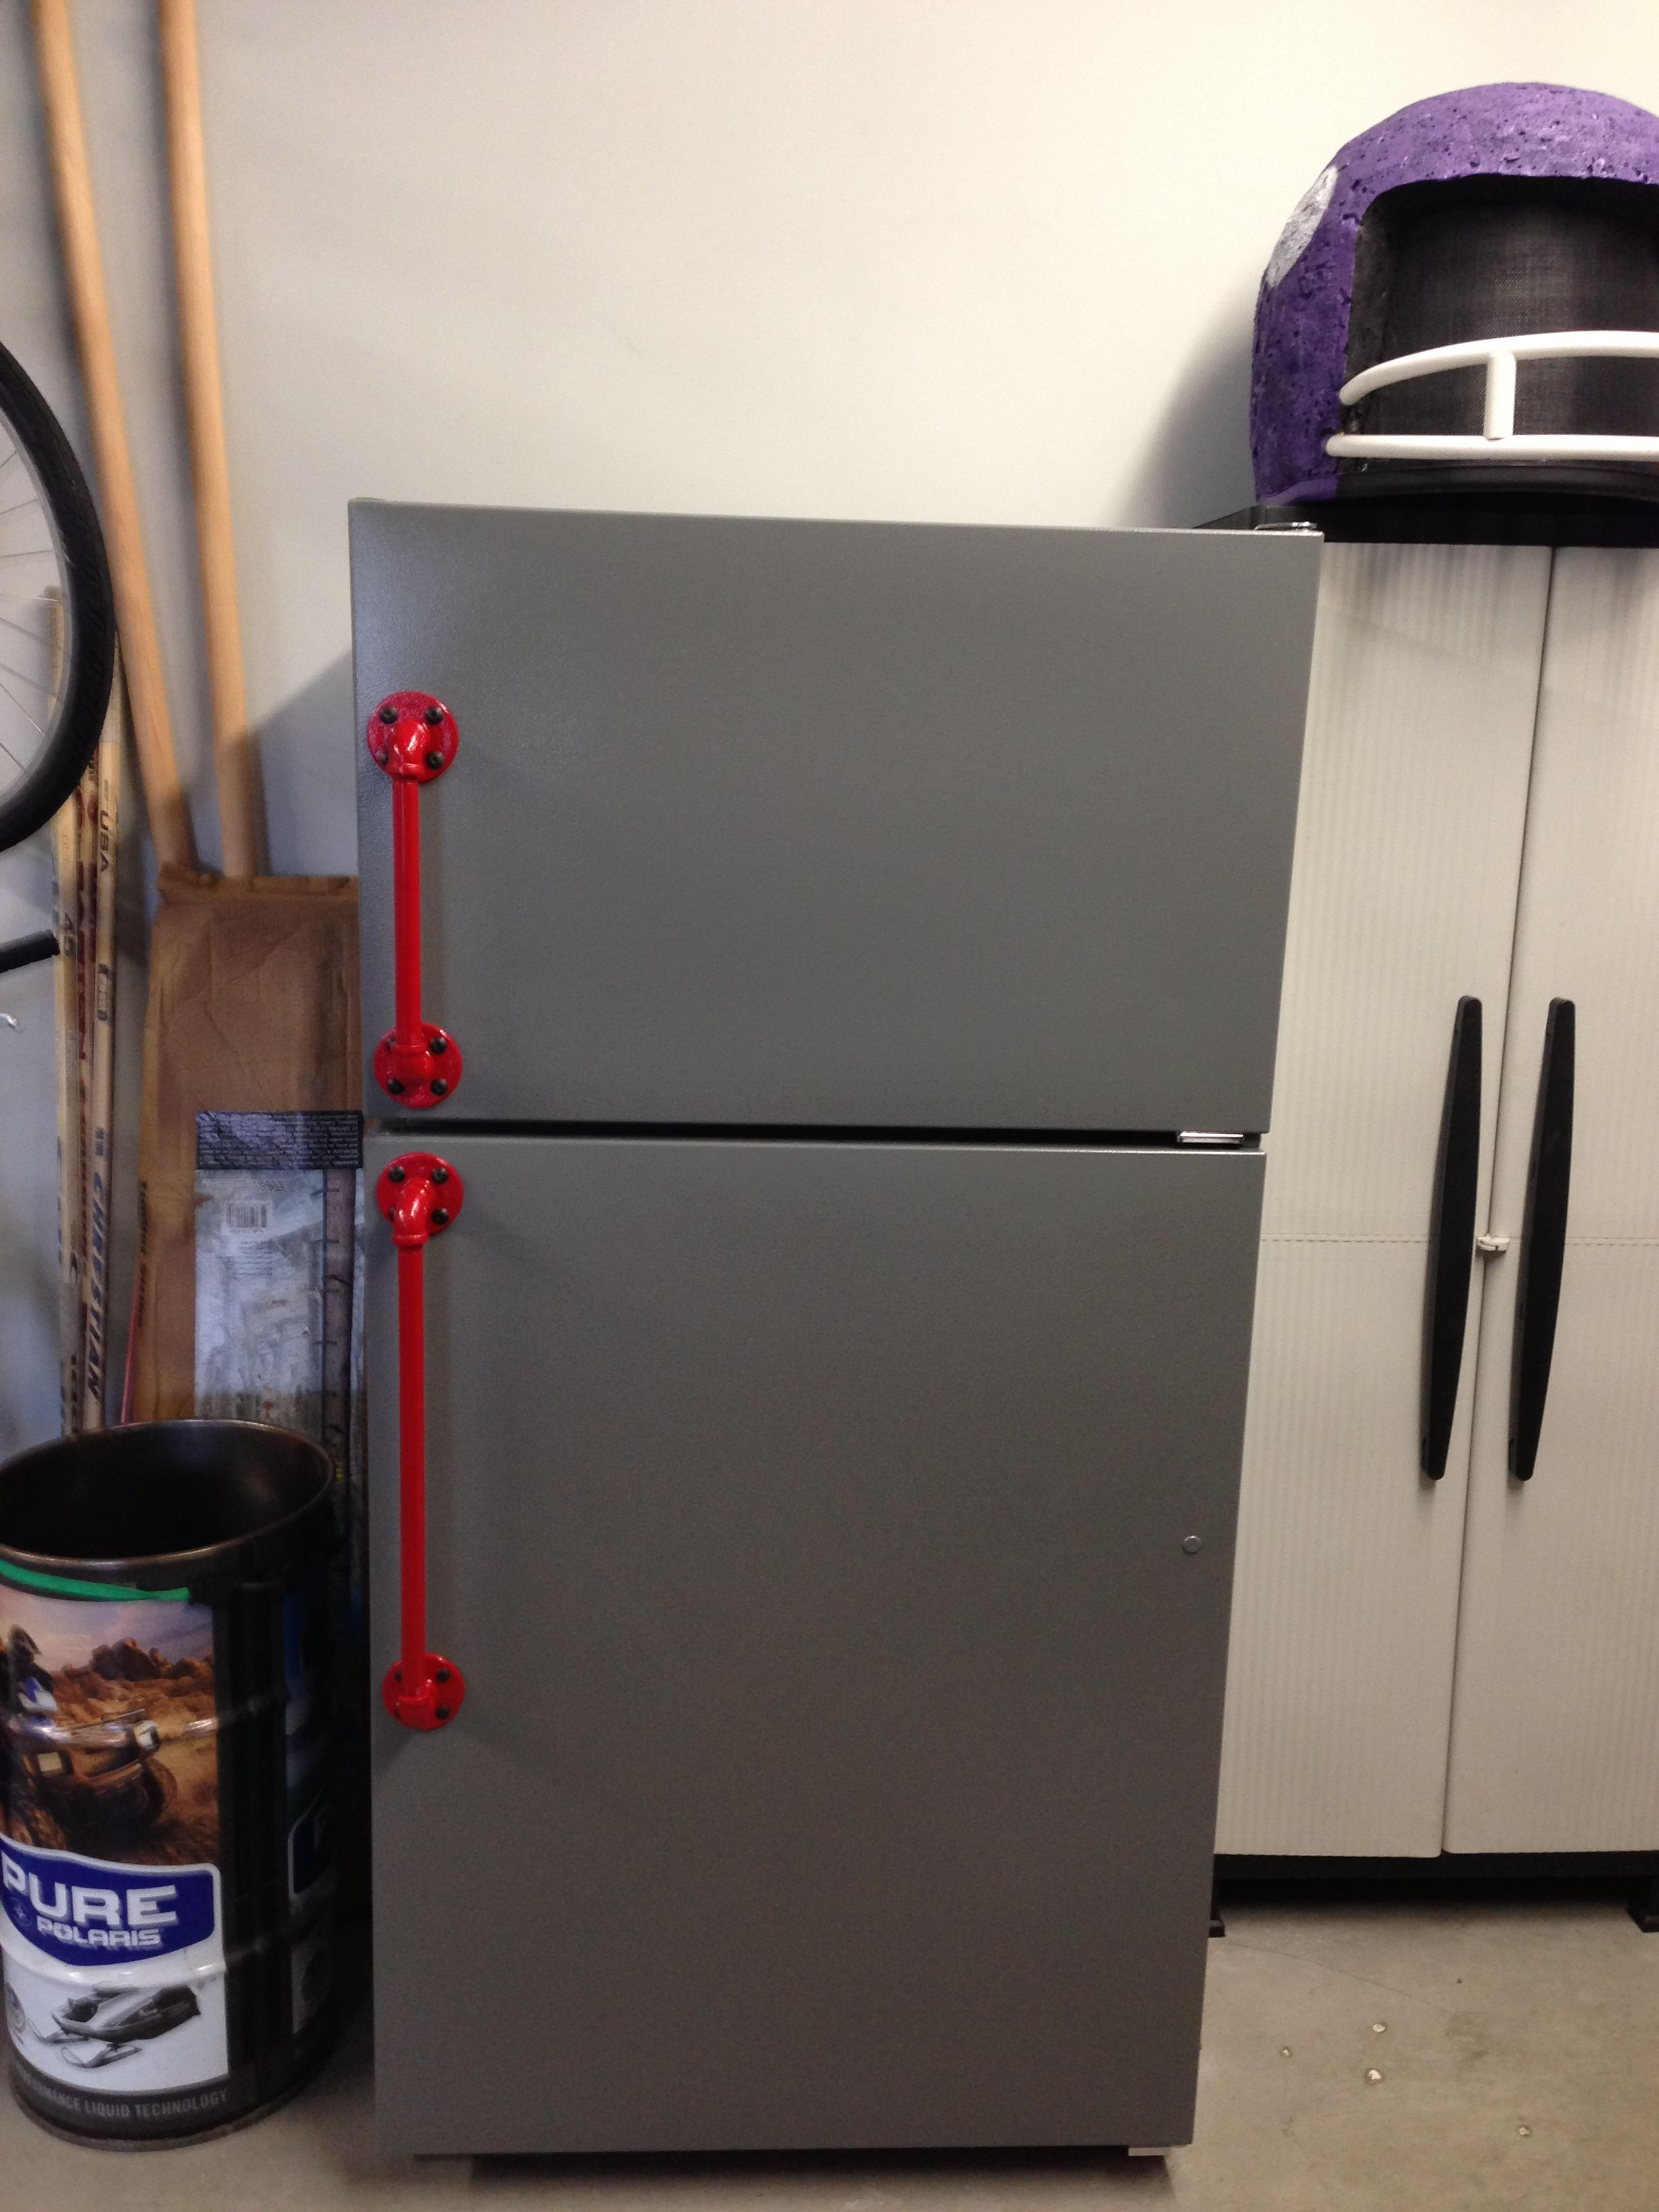 Just finished painting the garage fridge. Handles are